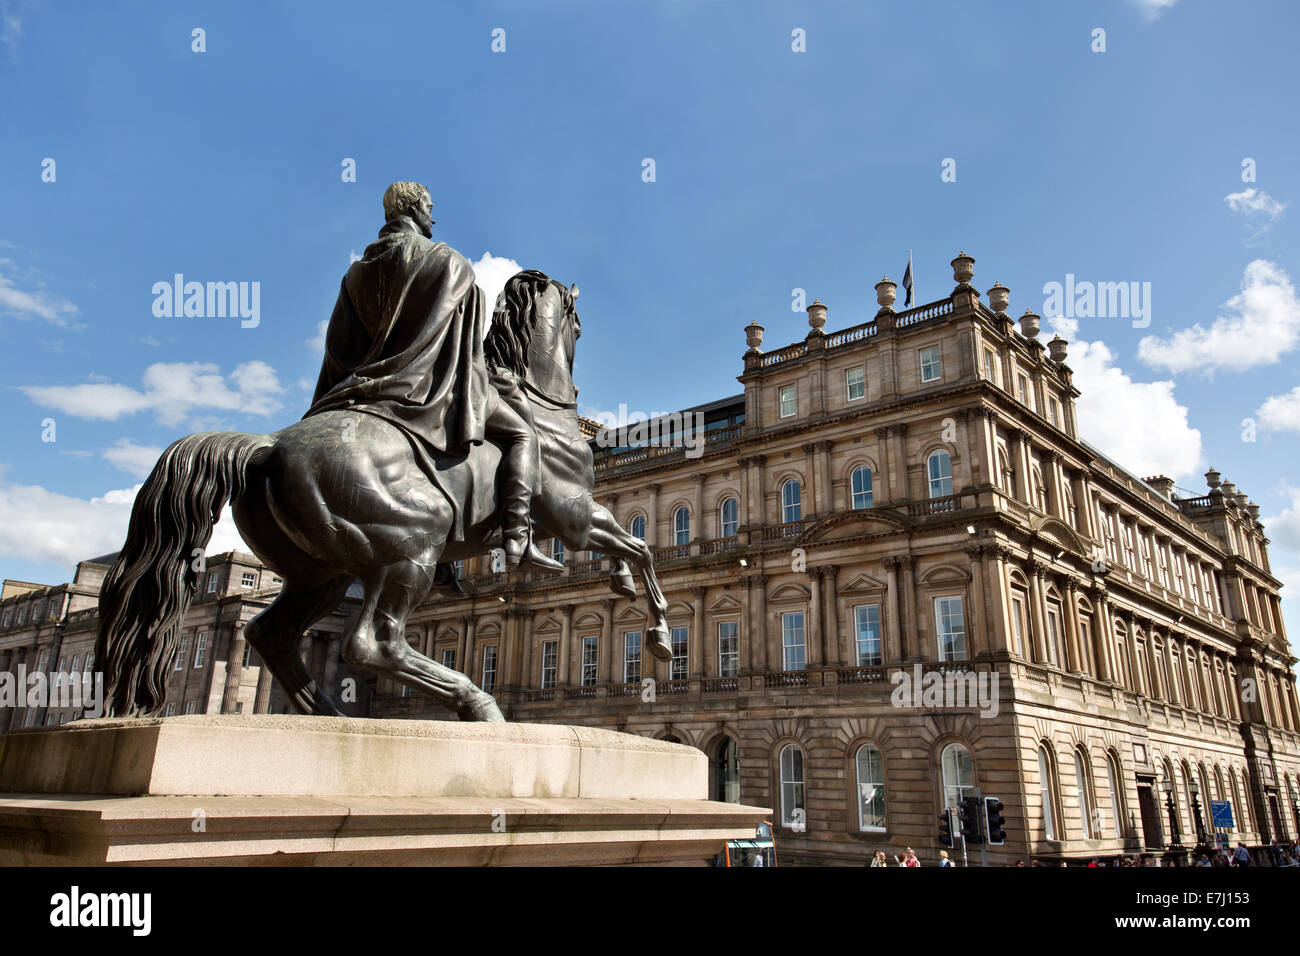 The Duke of Wellington Statue in Princes Street, Edinburgh, Scotland. - Stock Image